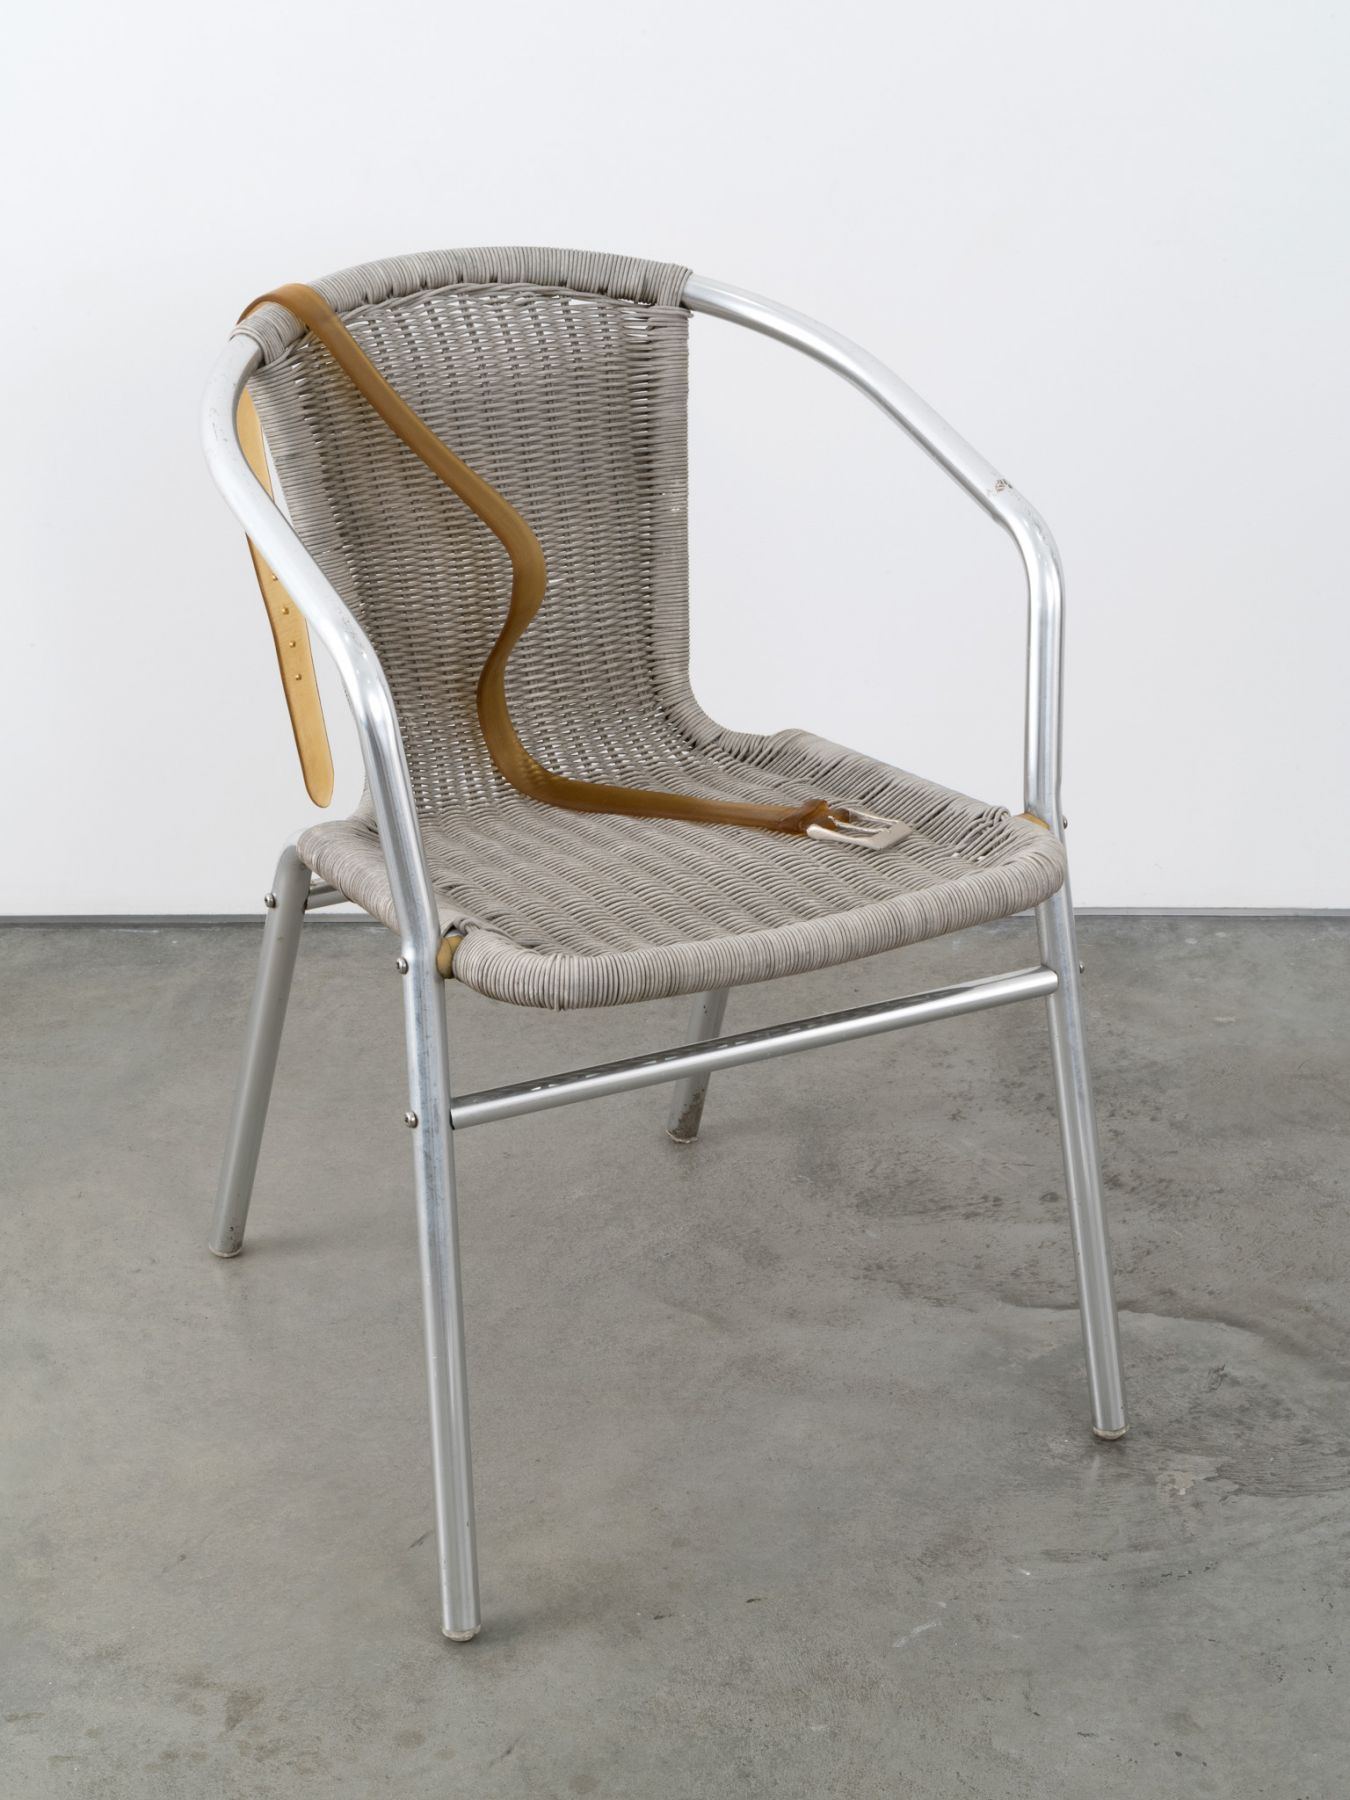 Valentin Carron, Belt on braided chair, 2014